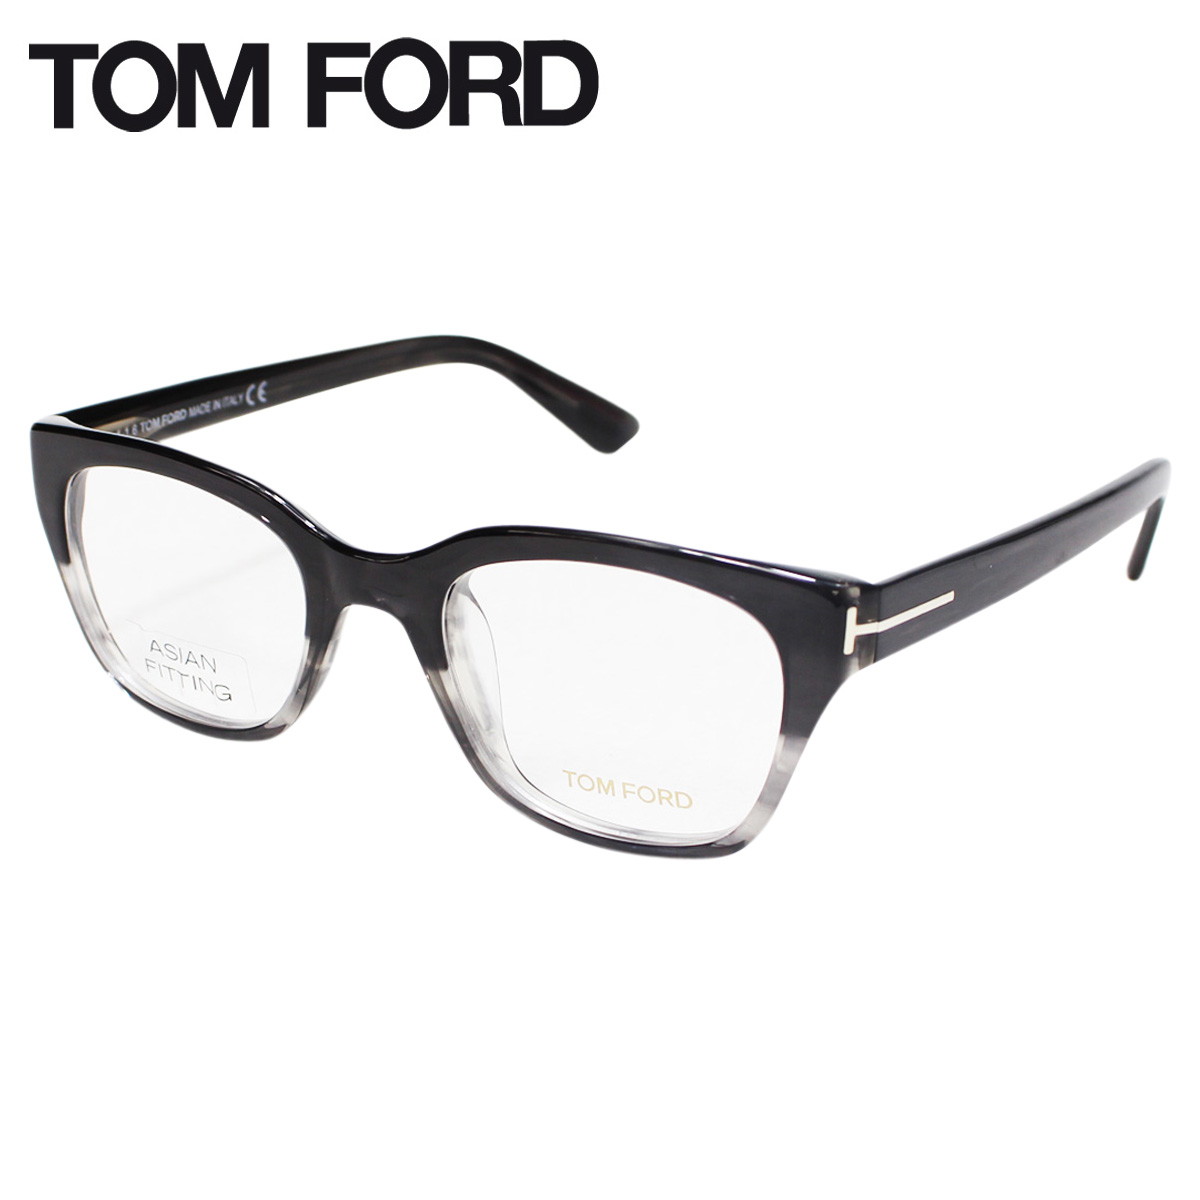 1b38a93c93 Allsports Made In Tom Ford Glasses 4240 Horse. Tom Ford Ft5429 001  Eyeglasses